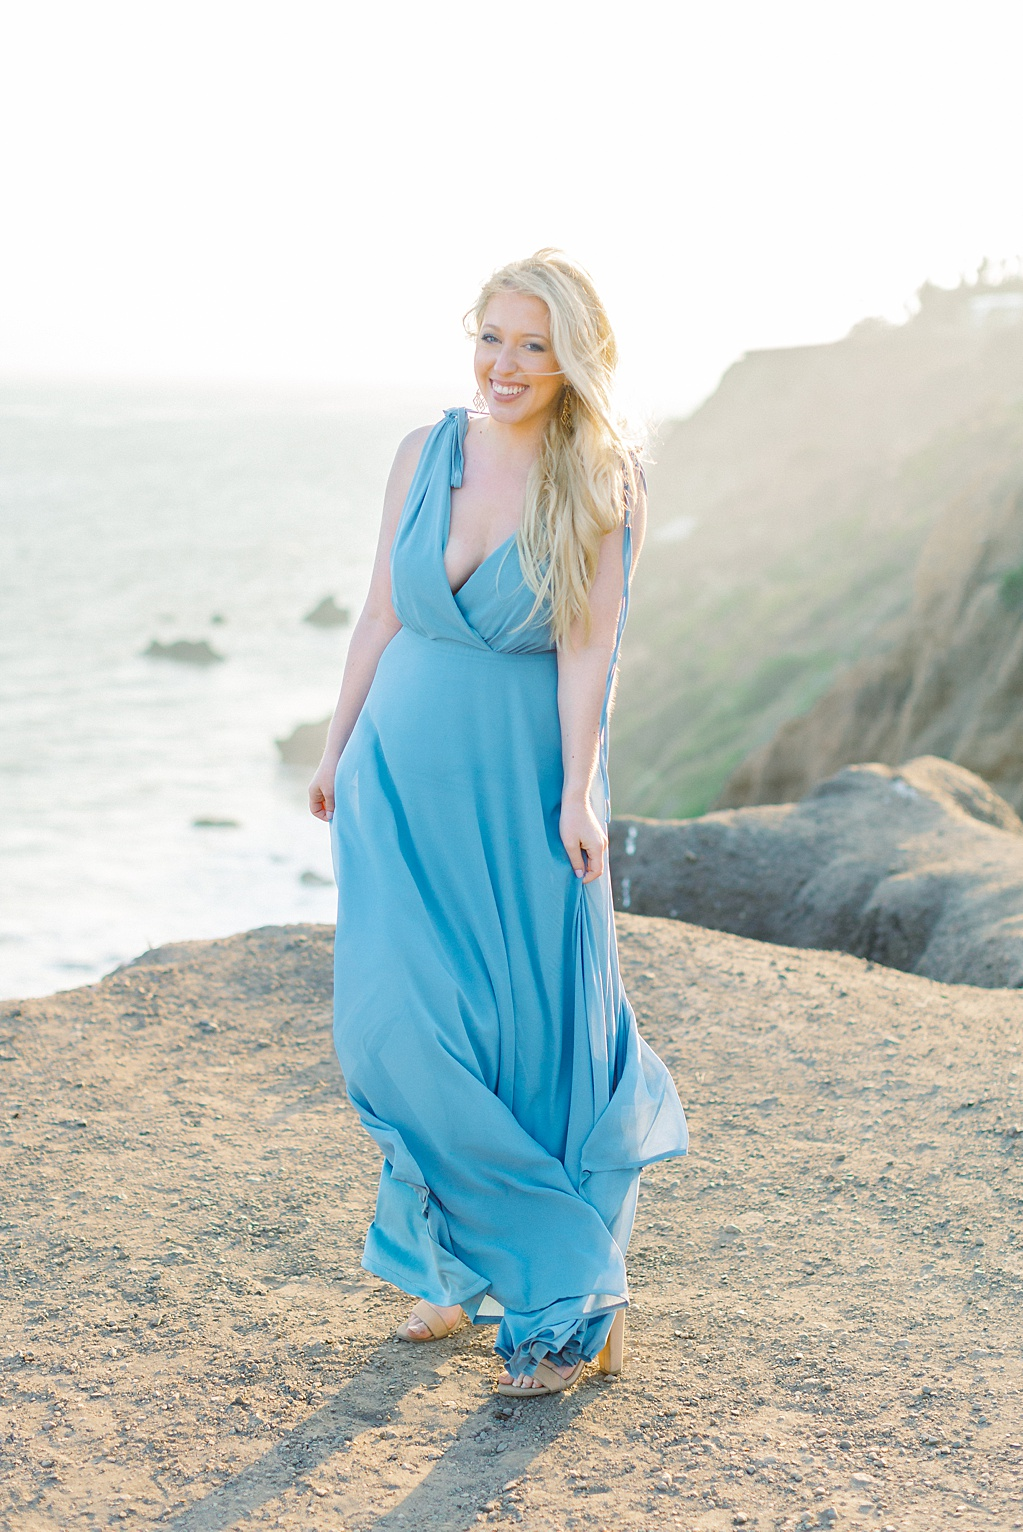 Malibu Engagement Session at El Matador State Beach by Madison Ellis Photography (12)